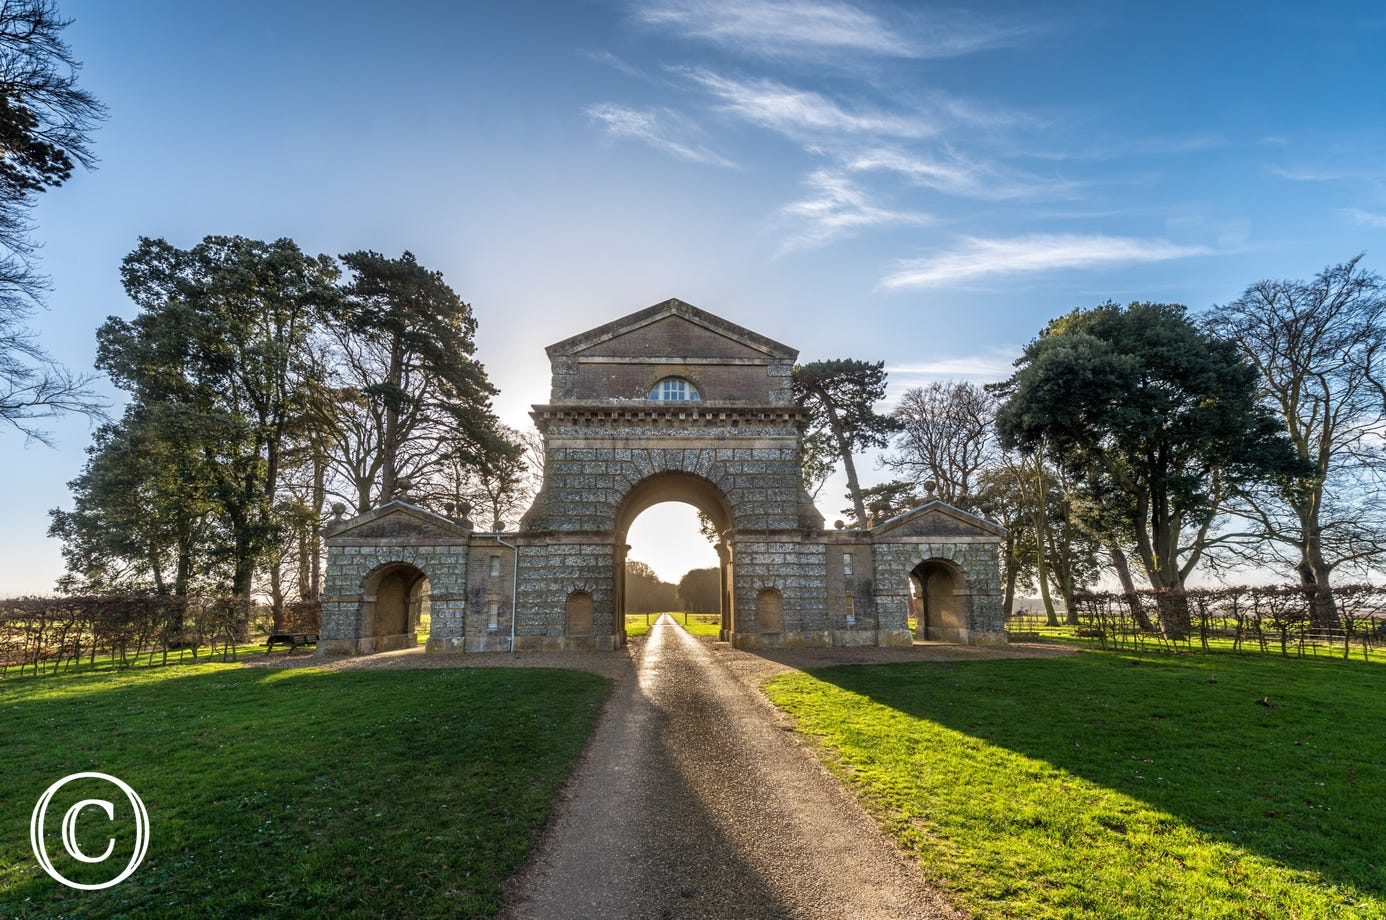 The Triumphal Arch - Holkham